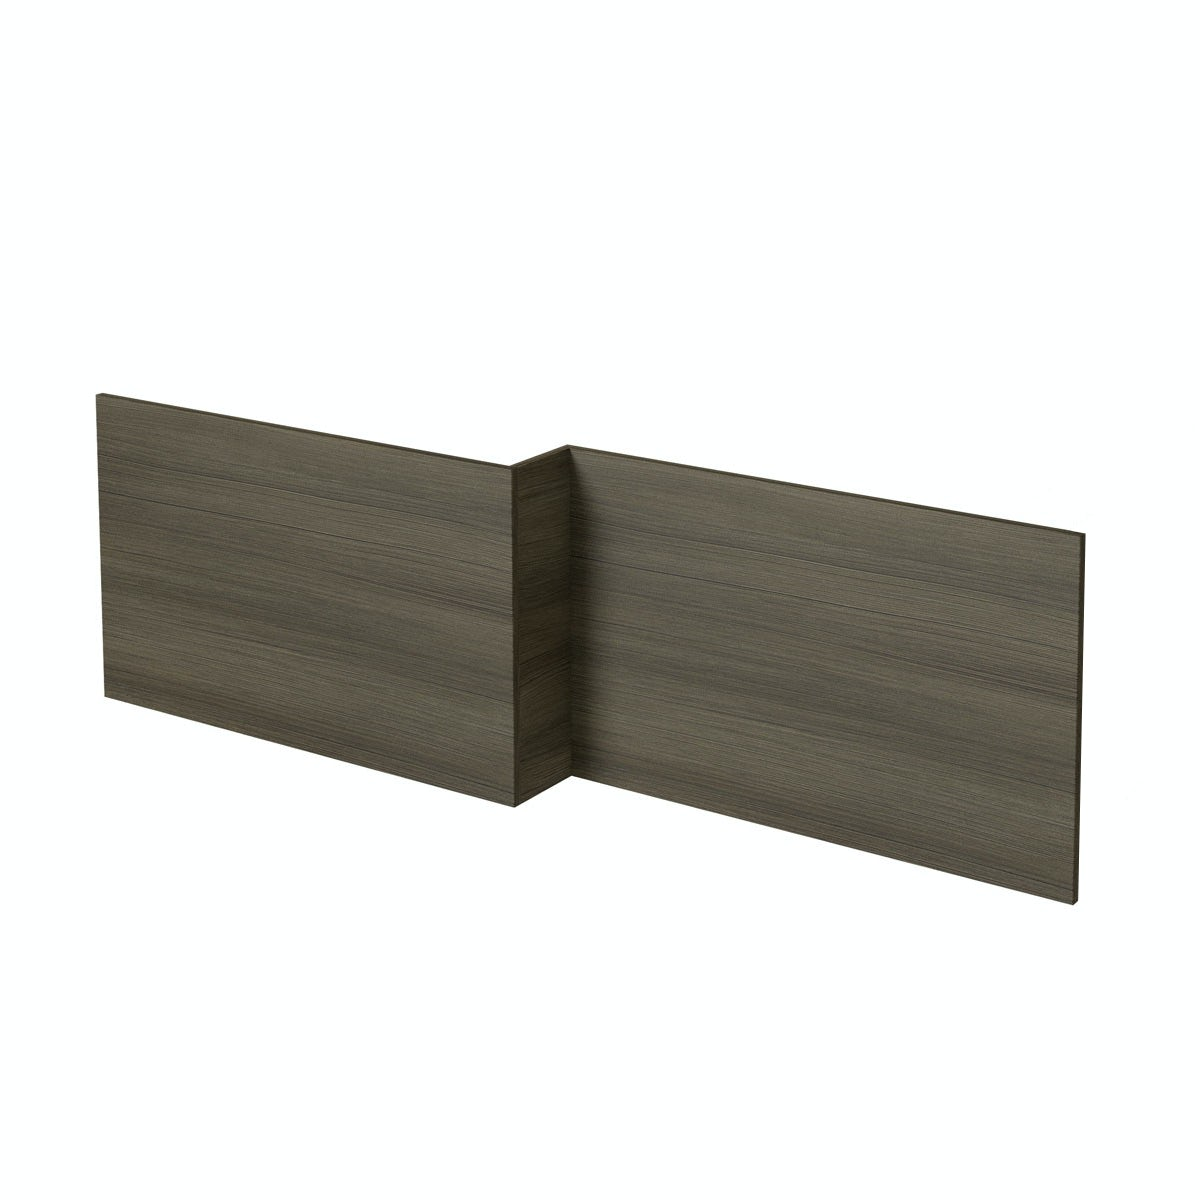 Wye walnut 1700 boston square shower bath front panel